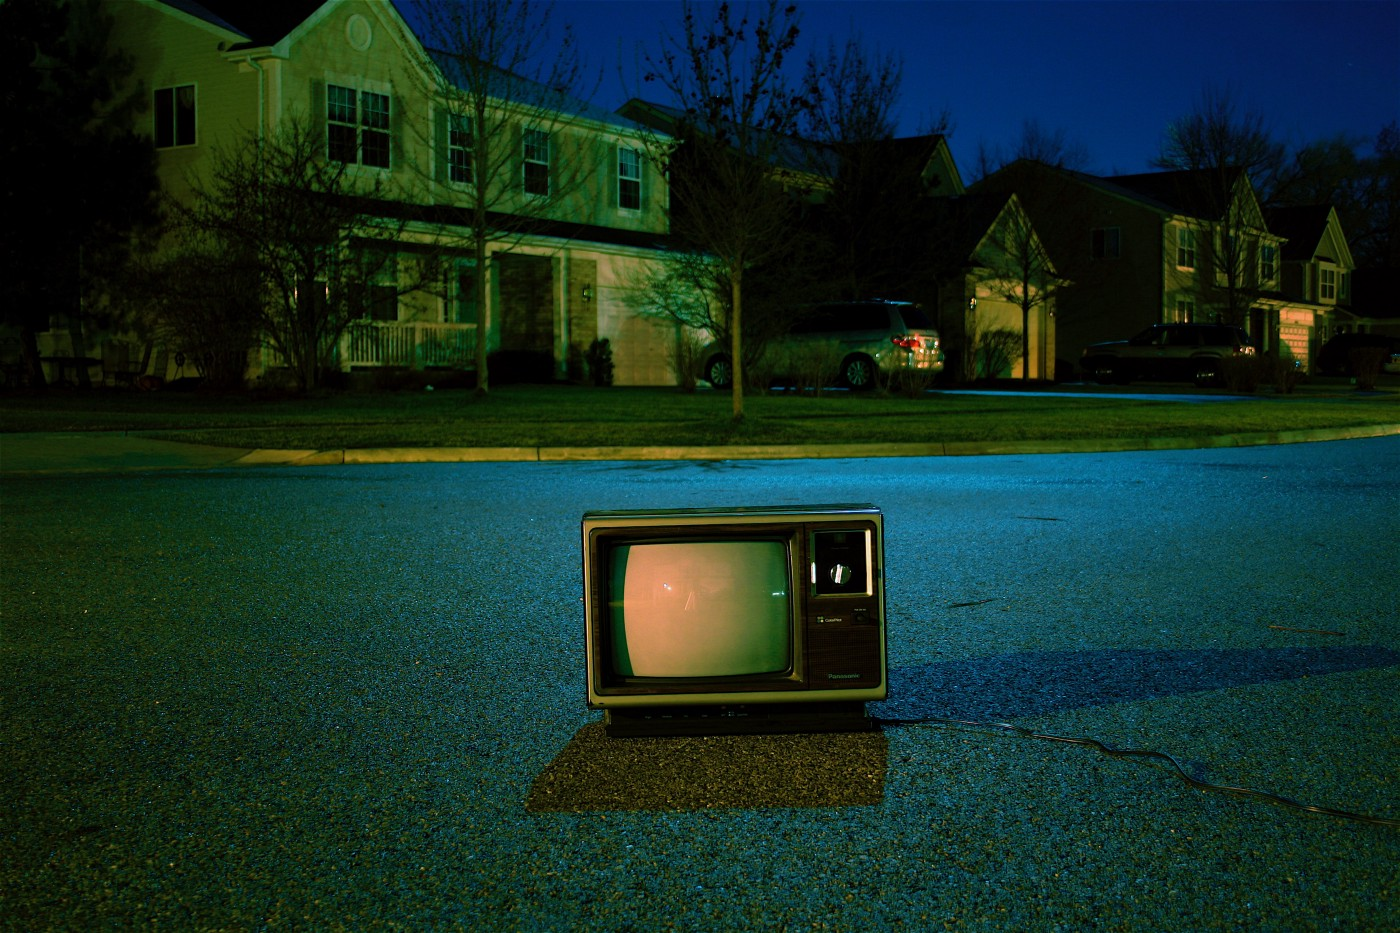 An old box-style TV on the ground in the middle of a suburban street